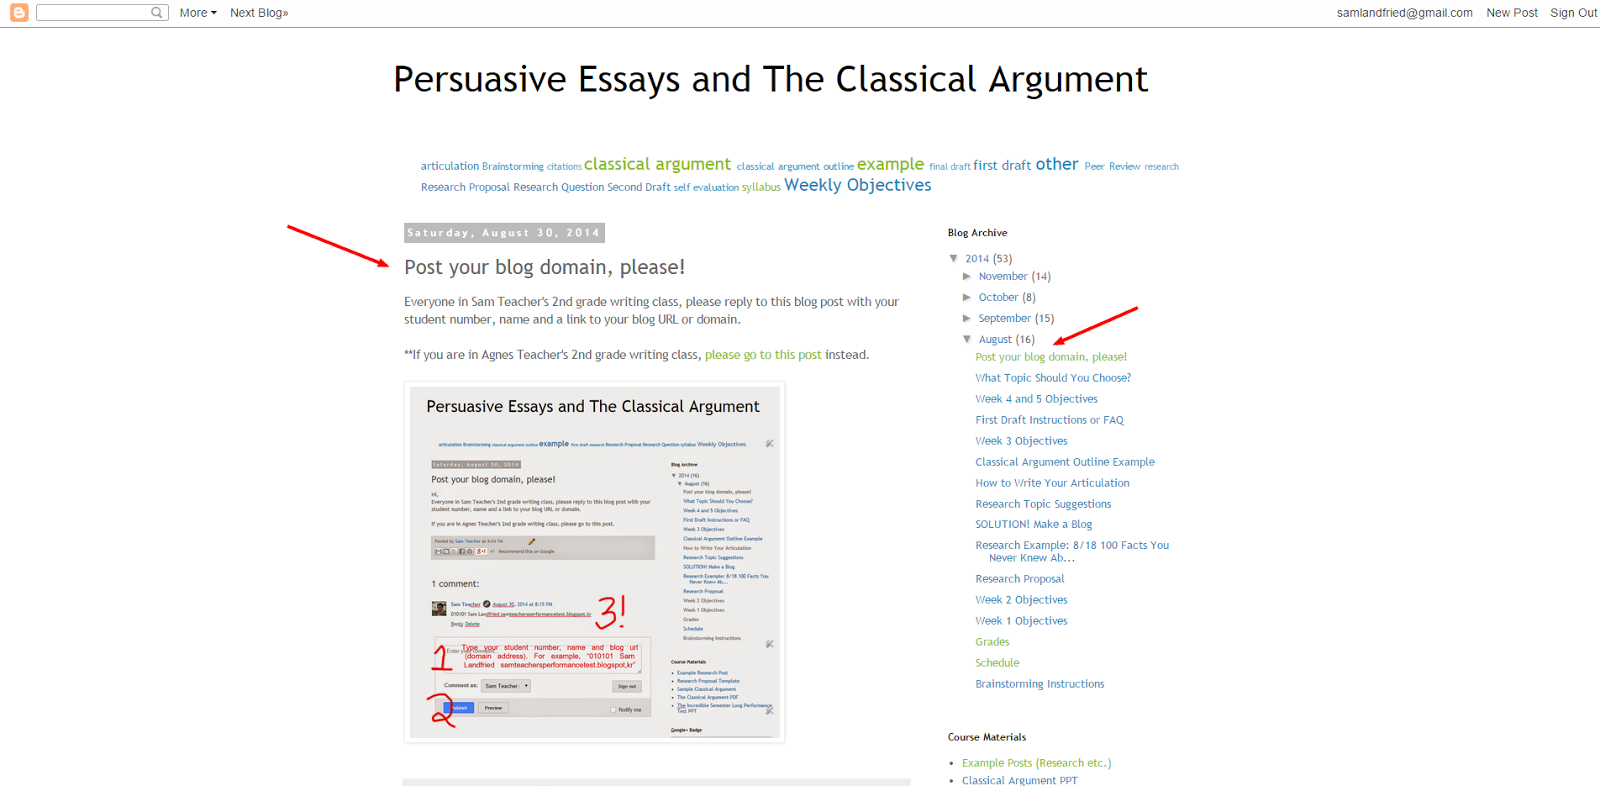 Persuasive Essays and The Classical Argument: How to find